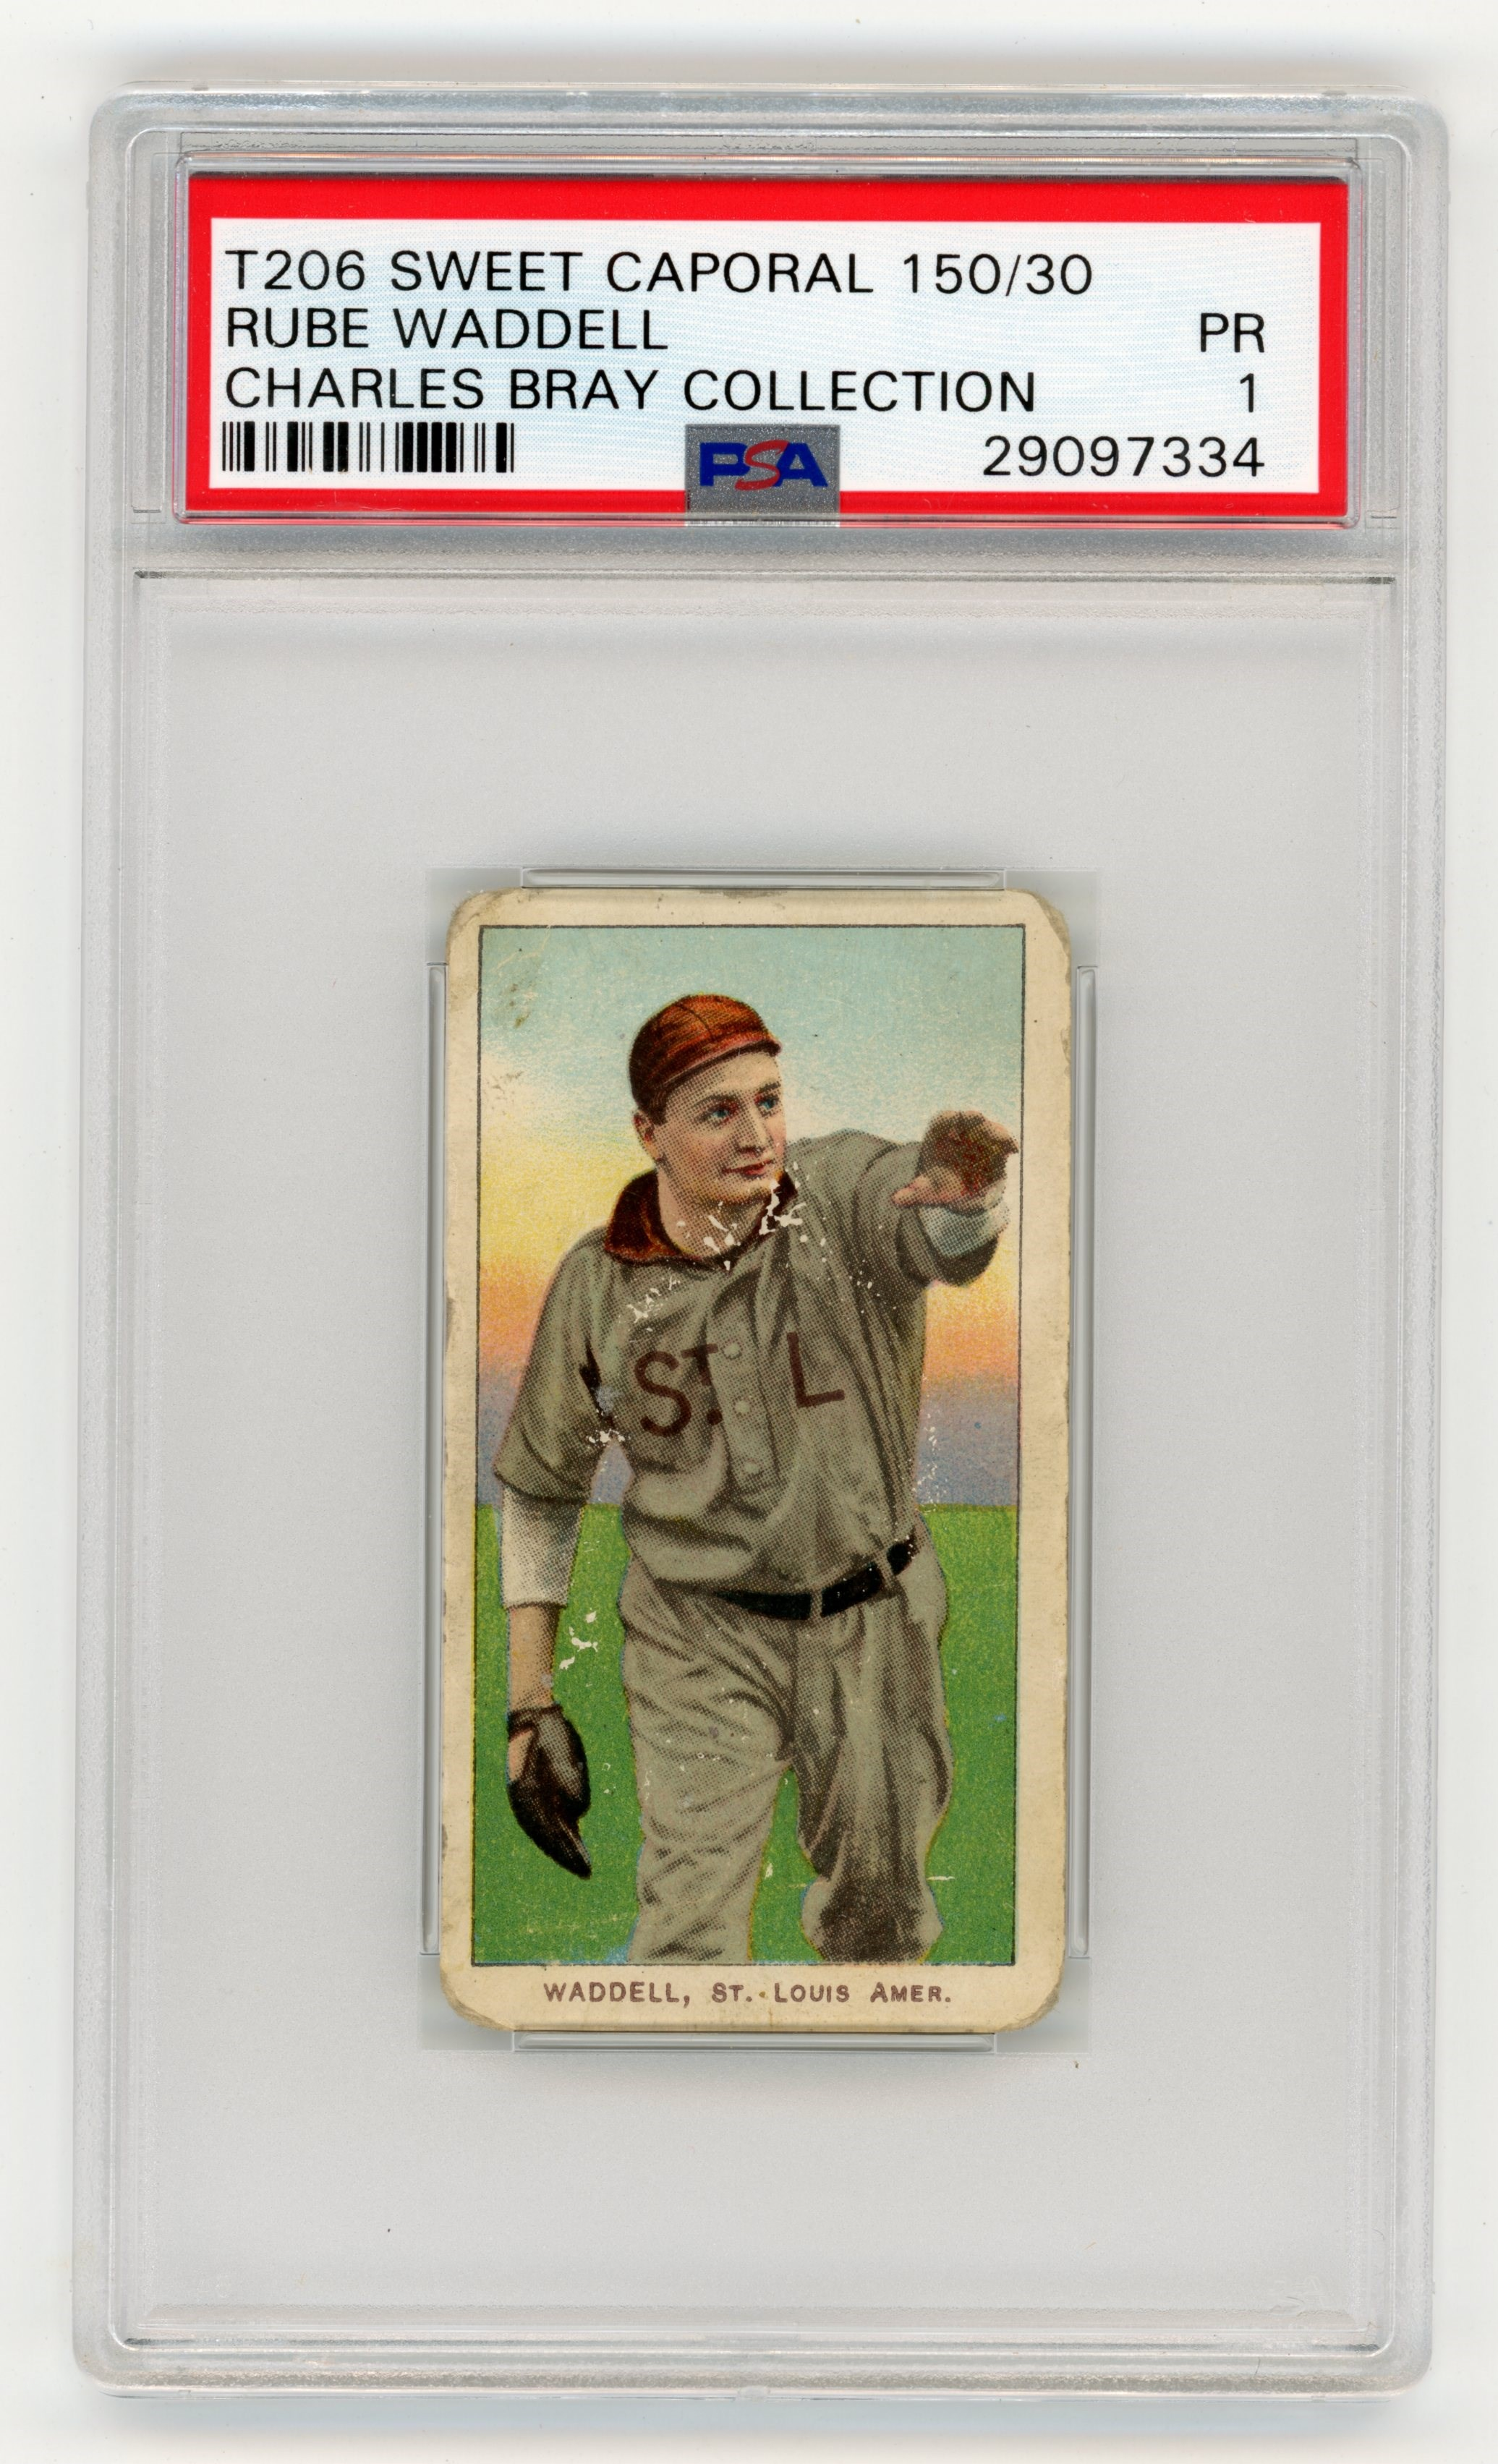 T206 Sweet Caporal 150/30 Rube Waddell PSA 1 From Charles Bray Collection